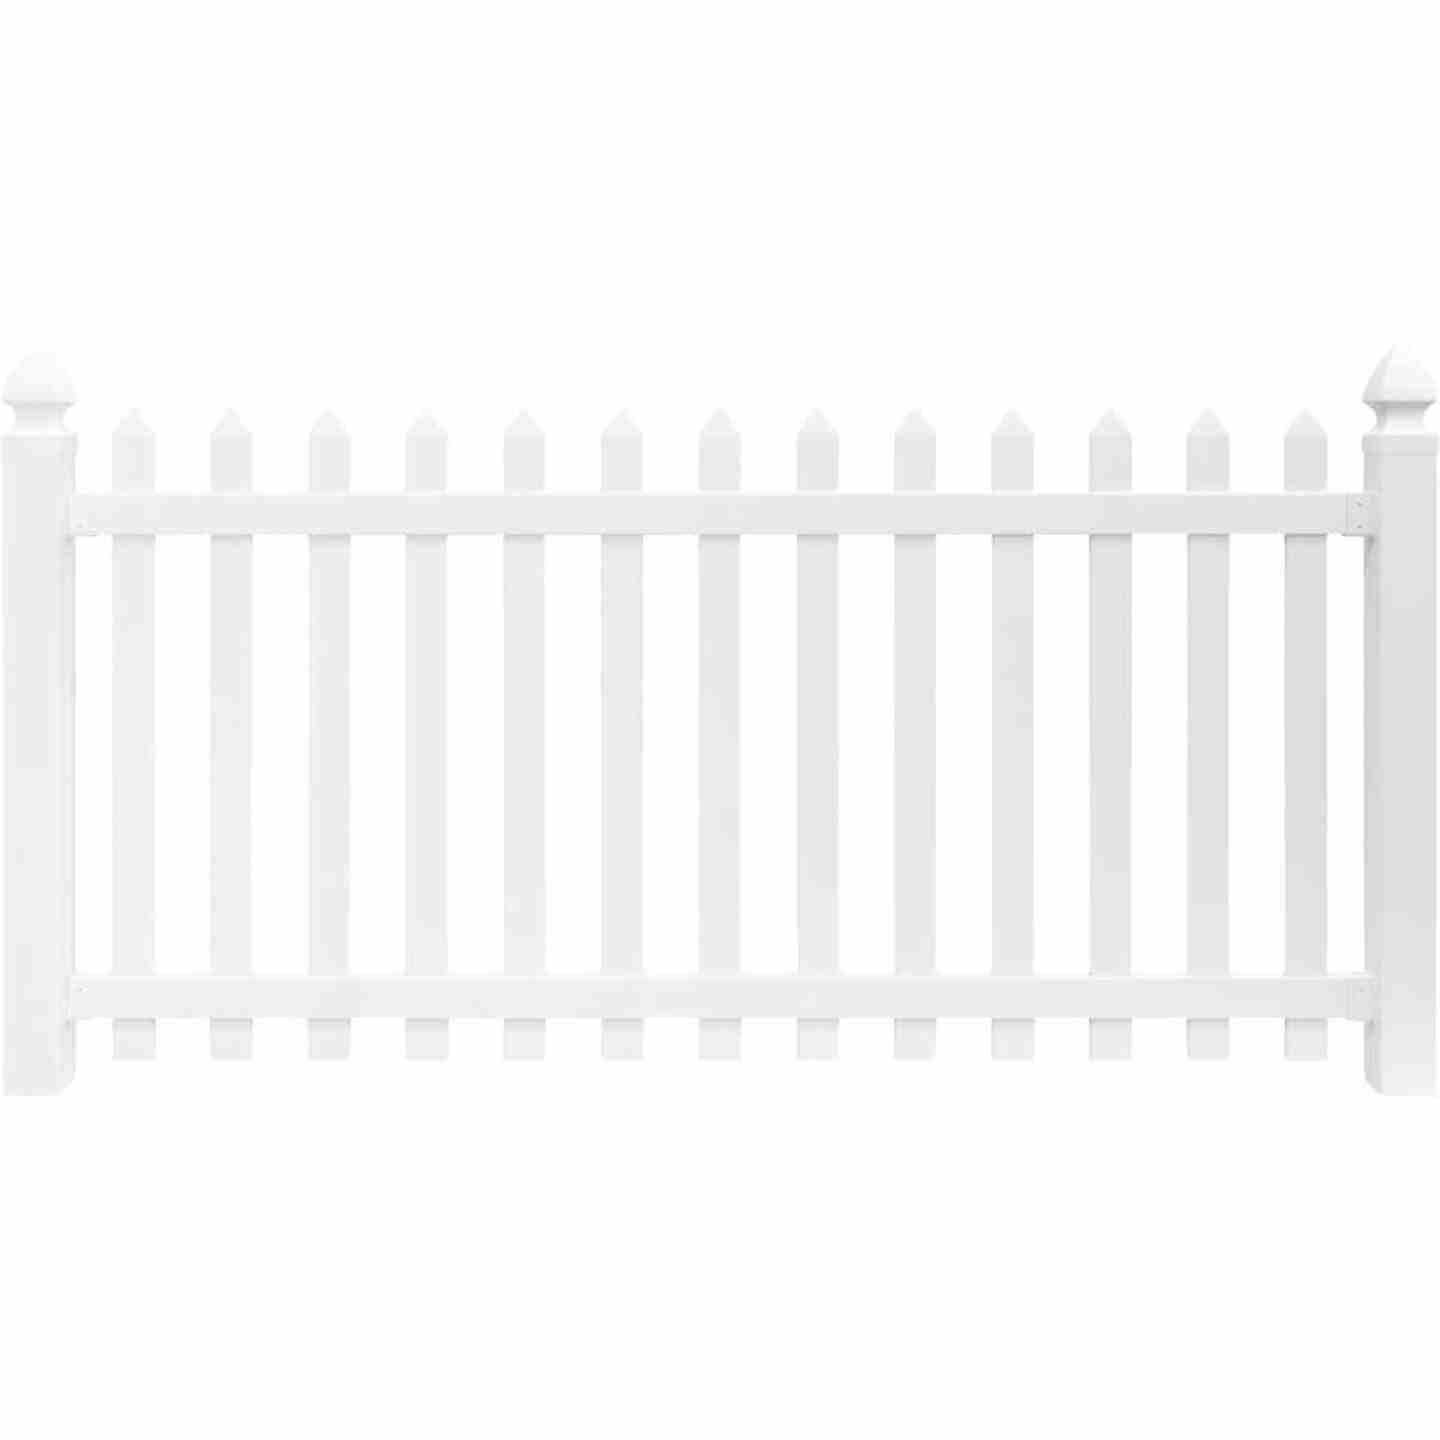 Outdoor Essentials 4 Ft. H. x 8 Ft. L. Spaced White Vinyl Picket Fence Image 4